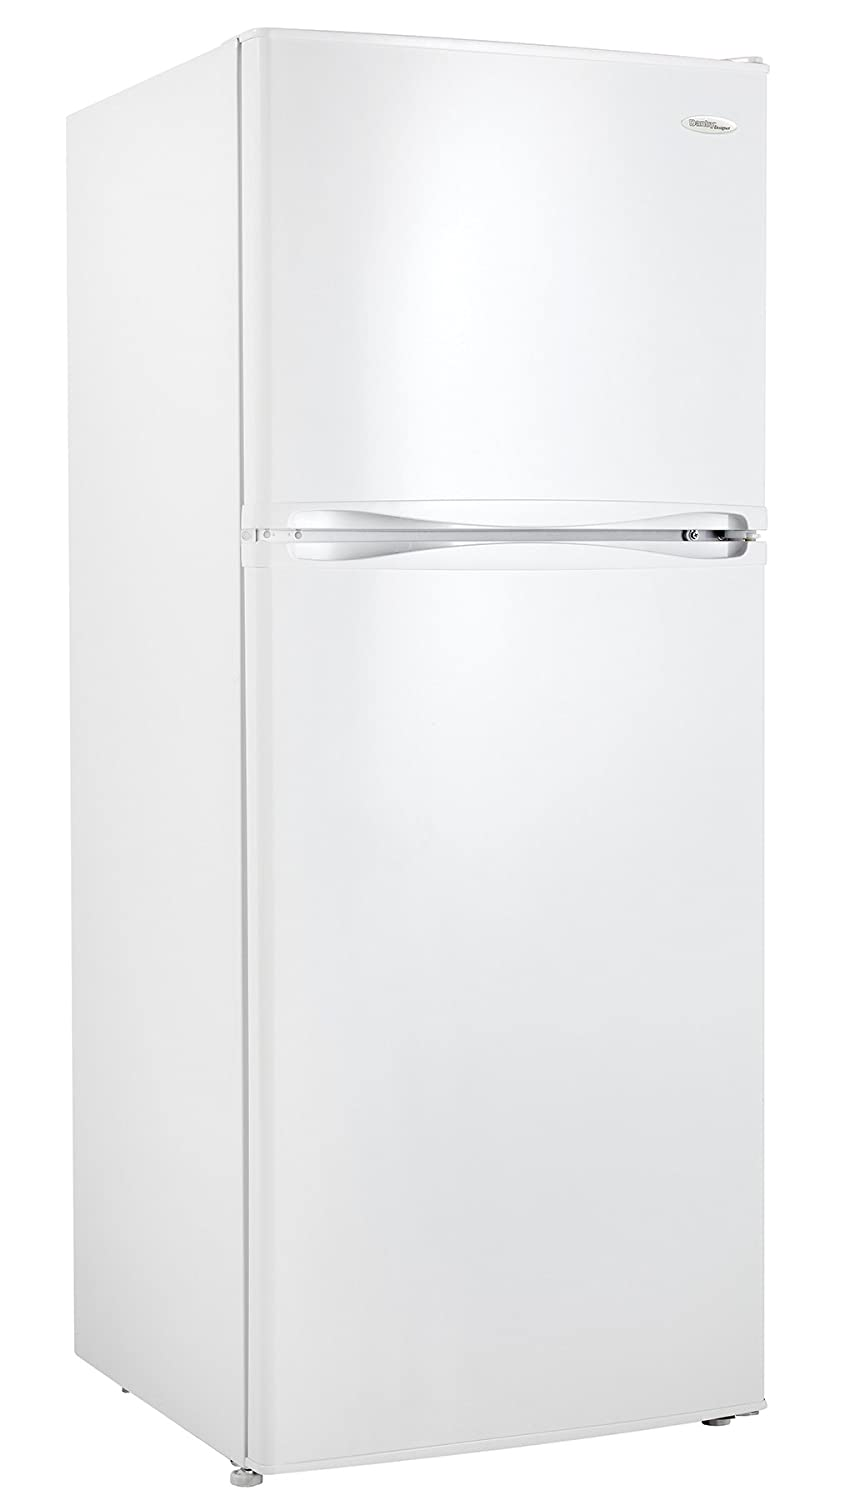 Amazon.com: Danby DFF100C2WDD Frost-Free Refrigerator with Top ...